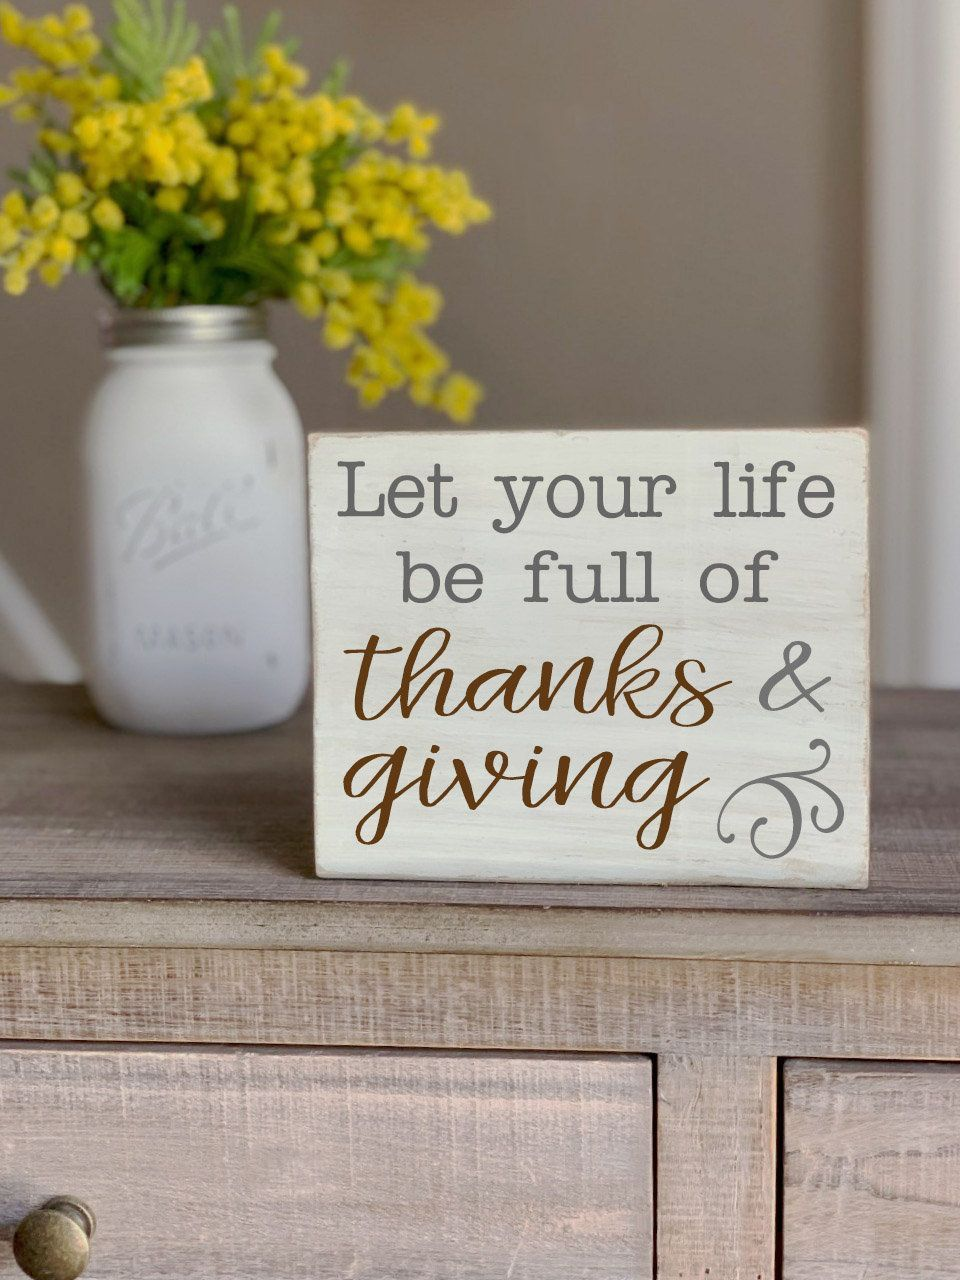 Let your life be full of THANKS & GIVING Mini Block Wood Sign, Fall Wooden Signs, Fall Mantle Decor, Fall Decor, Thanksgiving decor #fallmantledecor Let your life be full of THANKS & GIVING Mini Block Wood Sign, Fall Wooden Signs, Fall Mantle Decor, Fall Decor, Thanksgiving decor #FallDecor #HousewarmingGift #FunnyWoodenSign #HalloweenDecor #FallMantleDecor #FunnyPumpkinSign #ThanksgivingDecor #FunnySignForHome #WoodenThanksgiving #WoodenHalloween #fallmantledecor